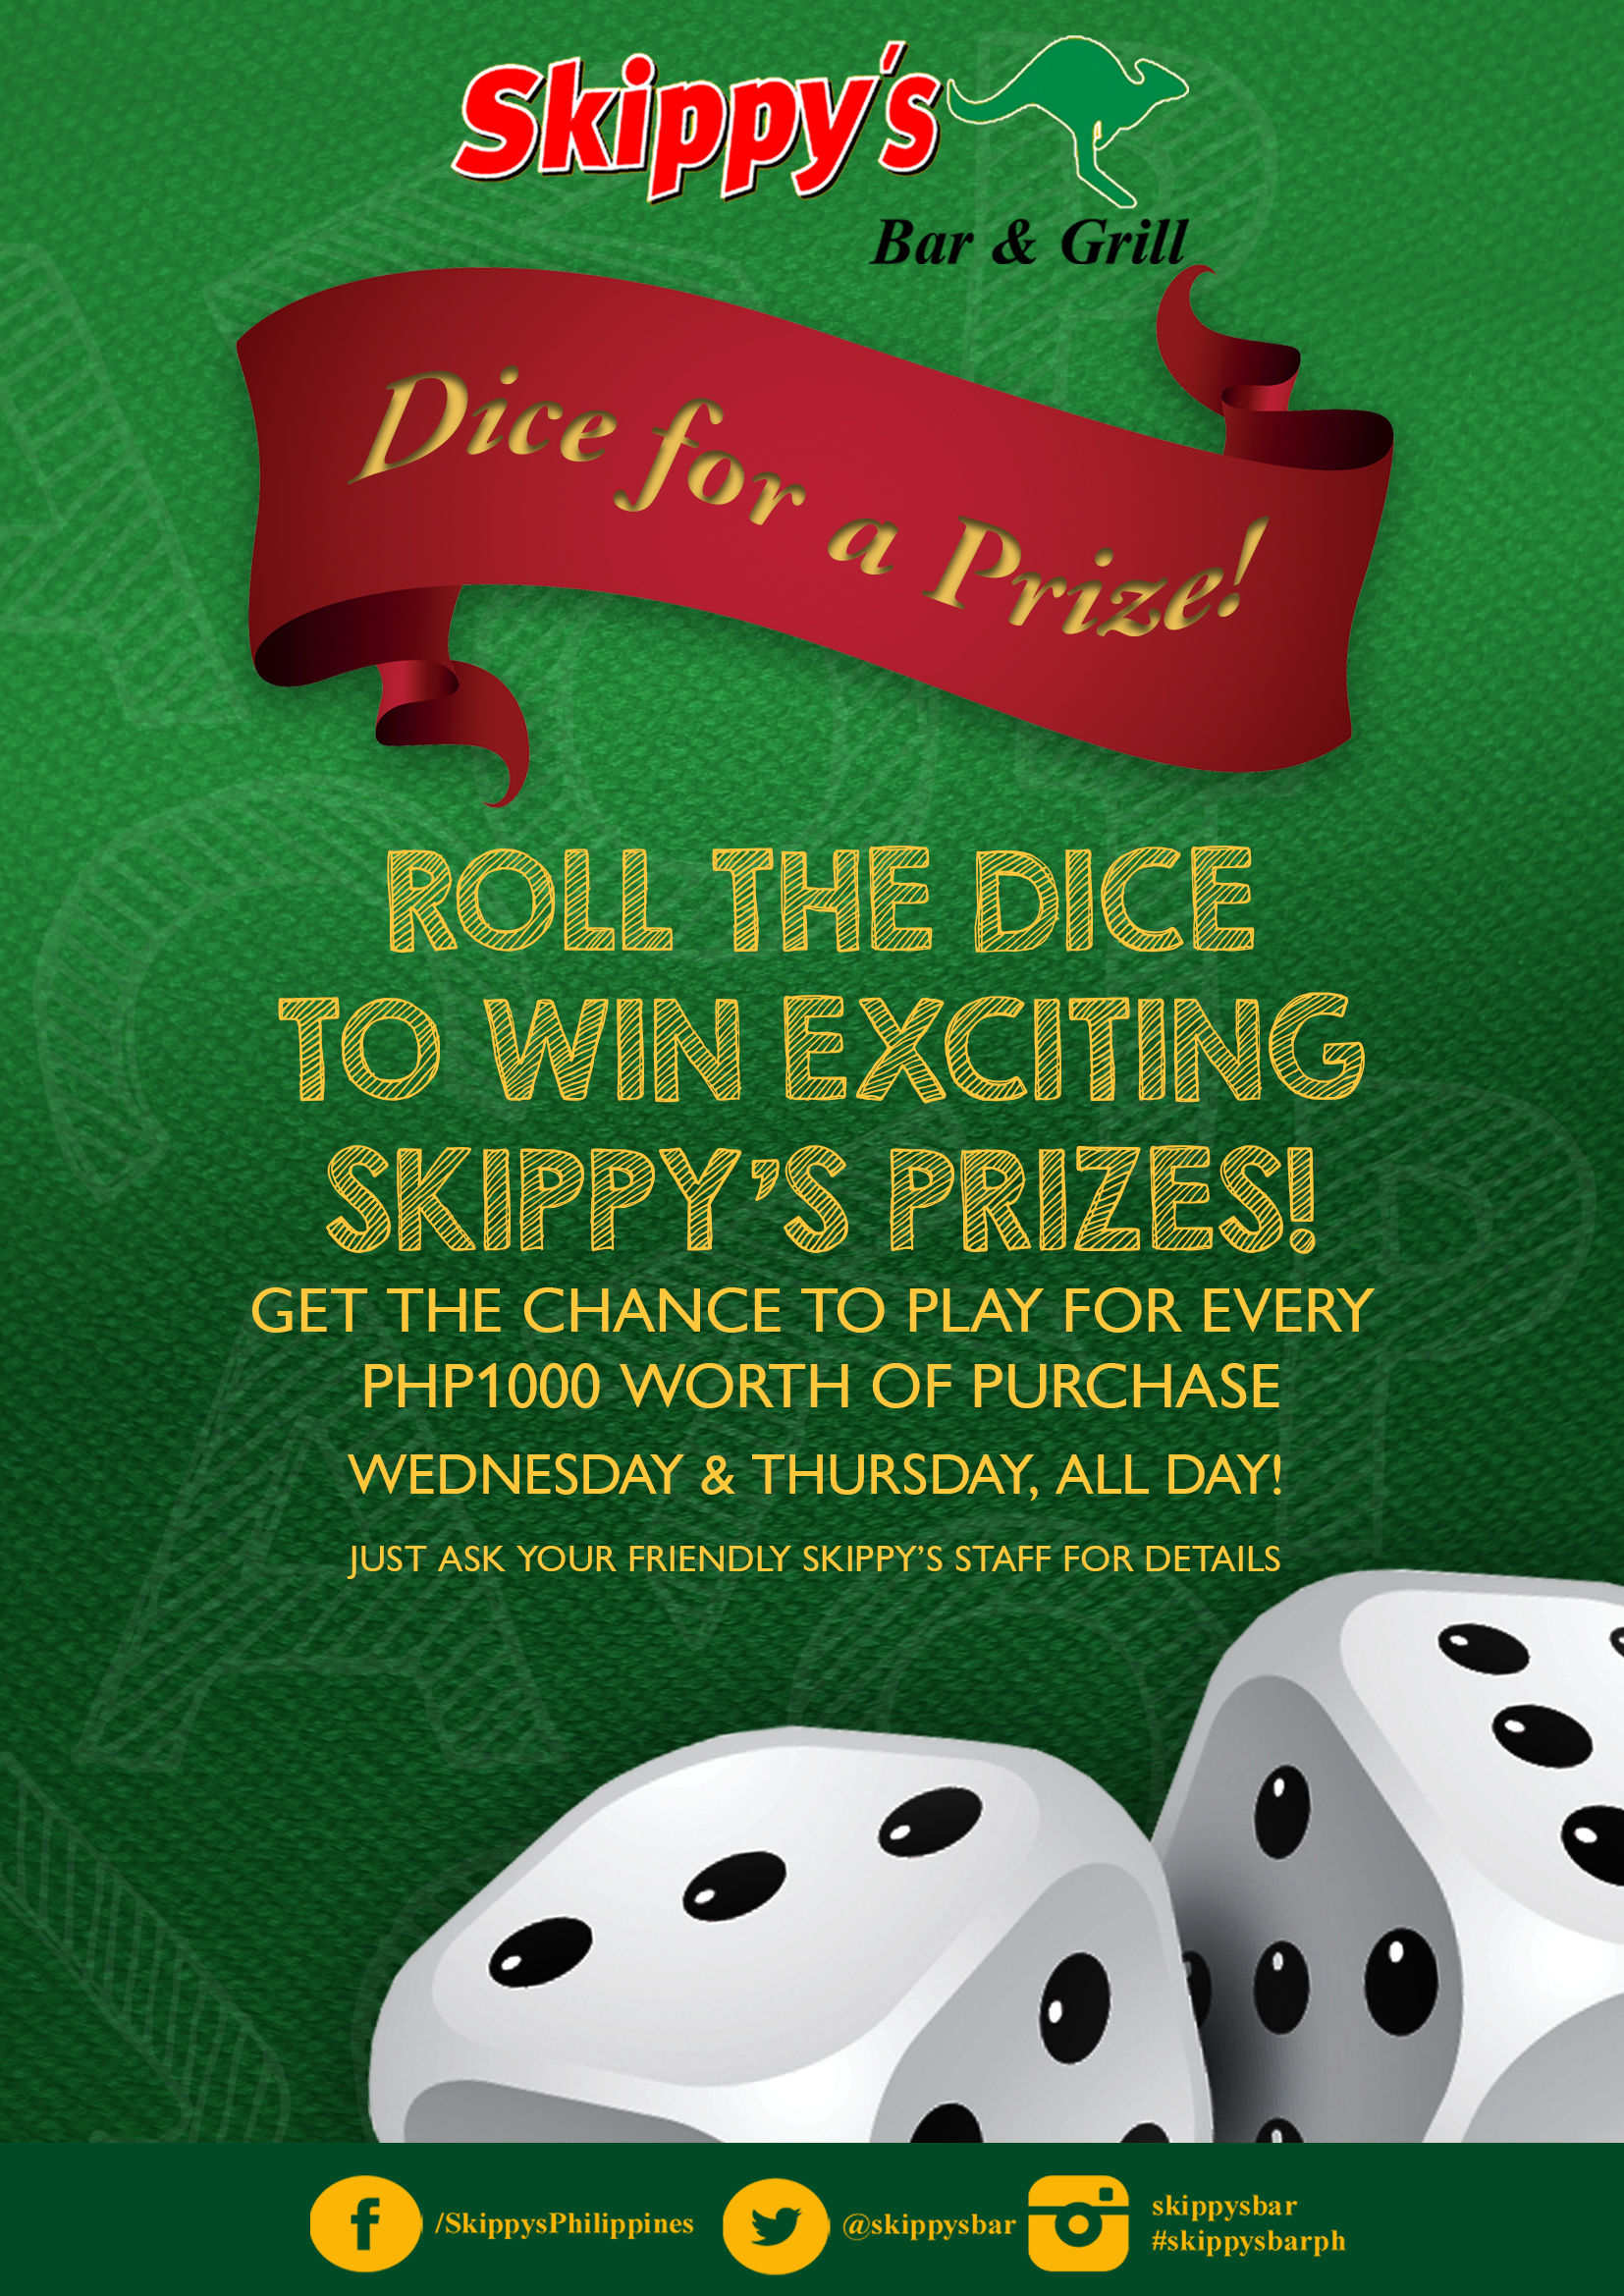 Dice for a Prize!